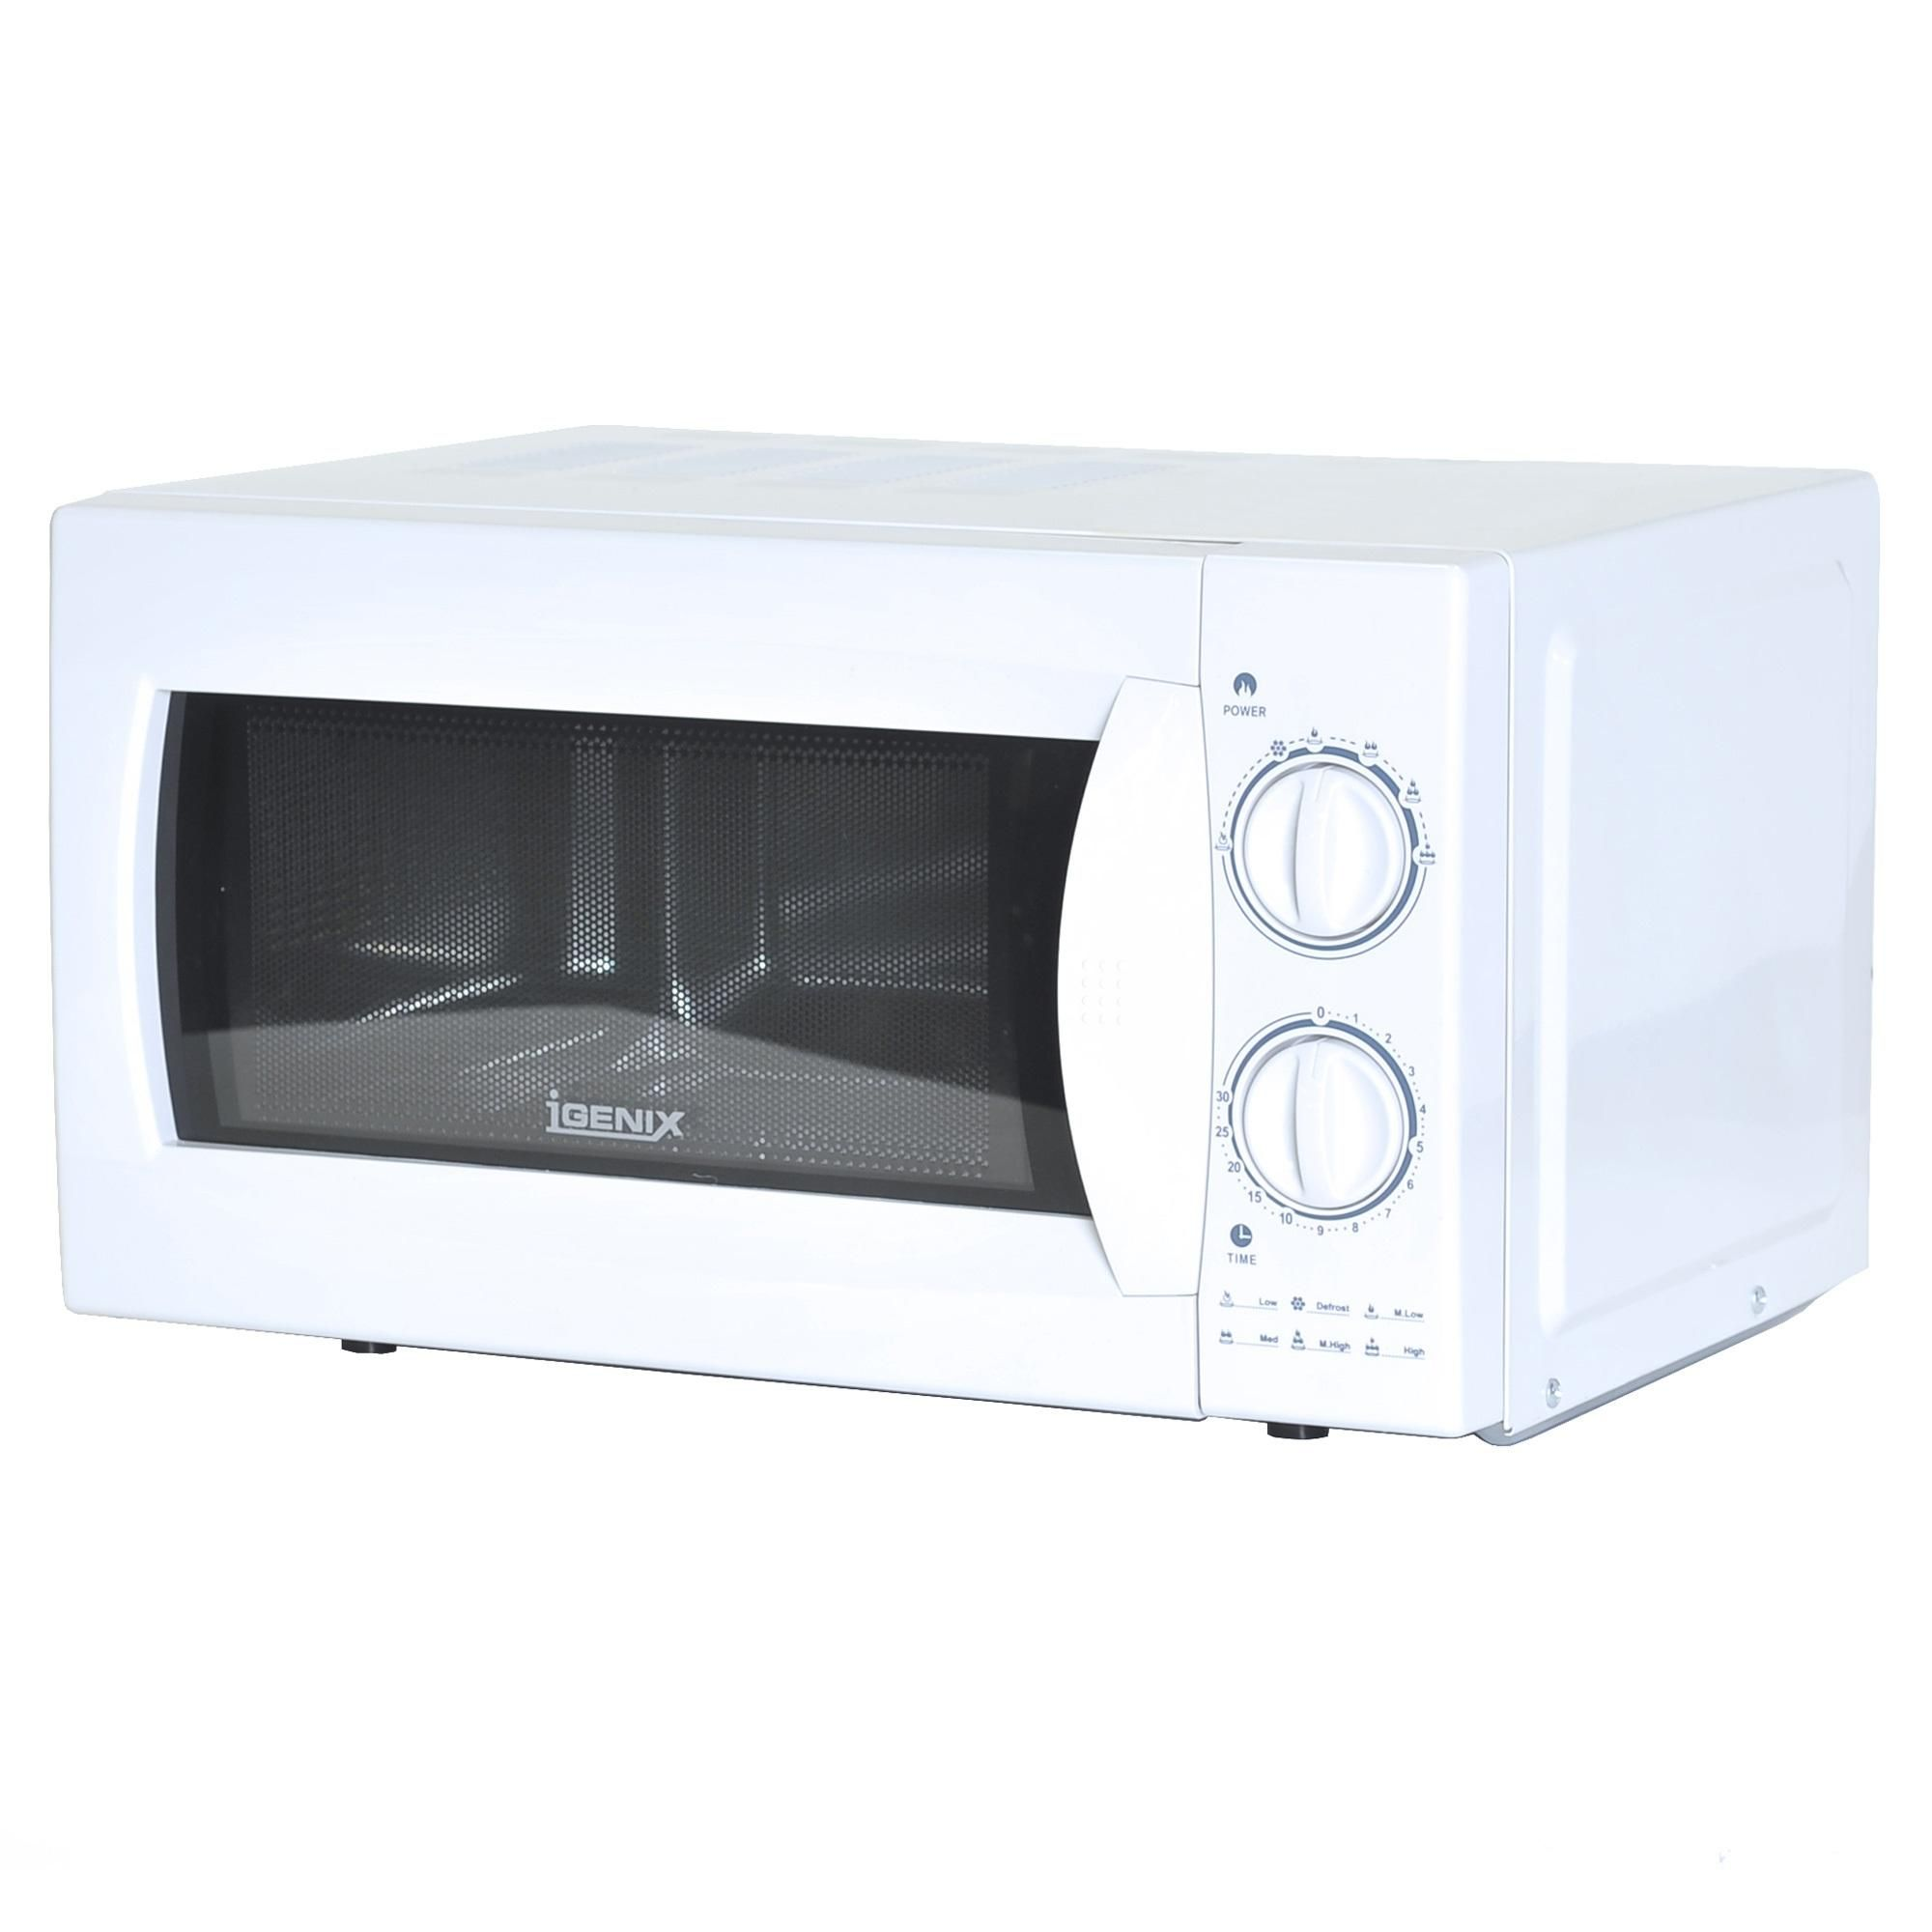 Igenix Ig2980 Manual Microwave With Stainless Steel Interior 20 L 800 W White